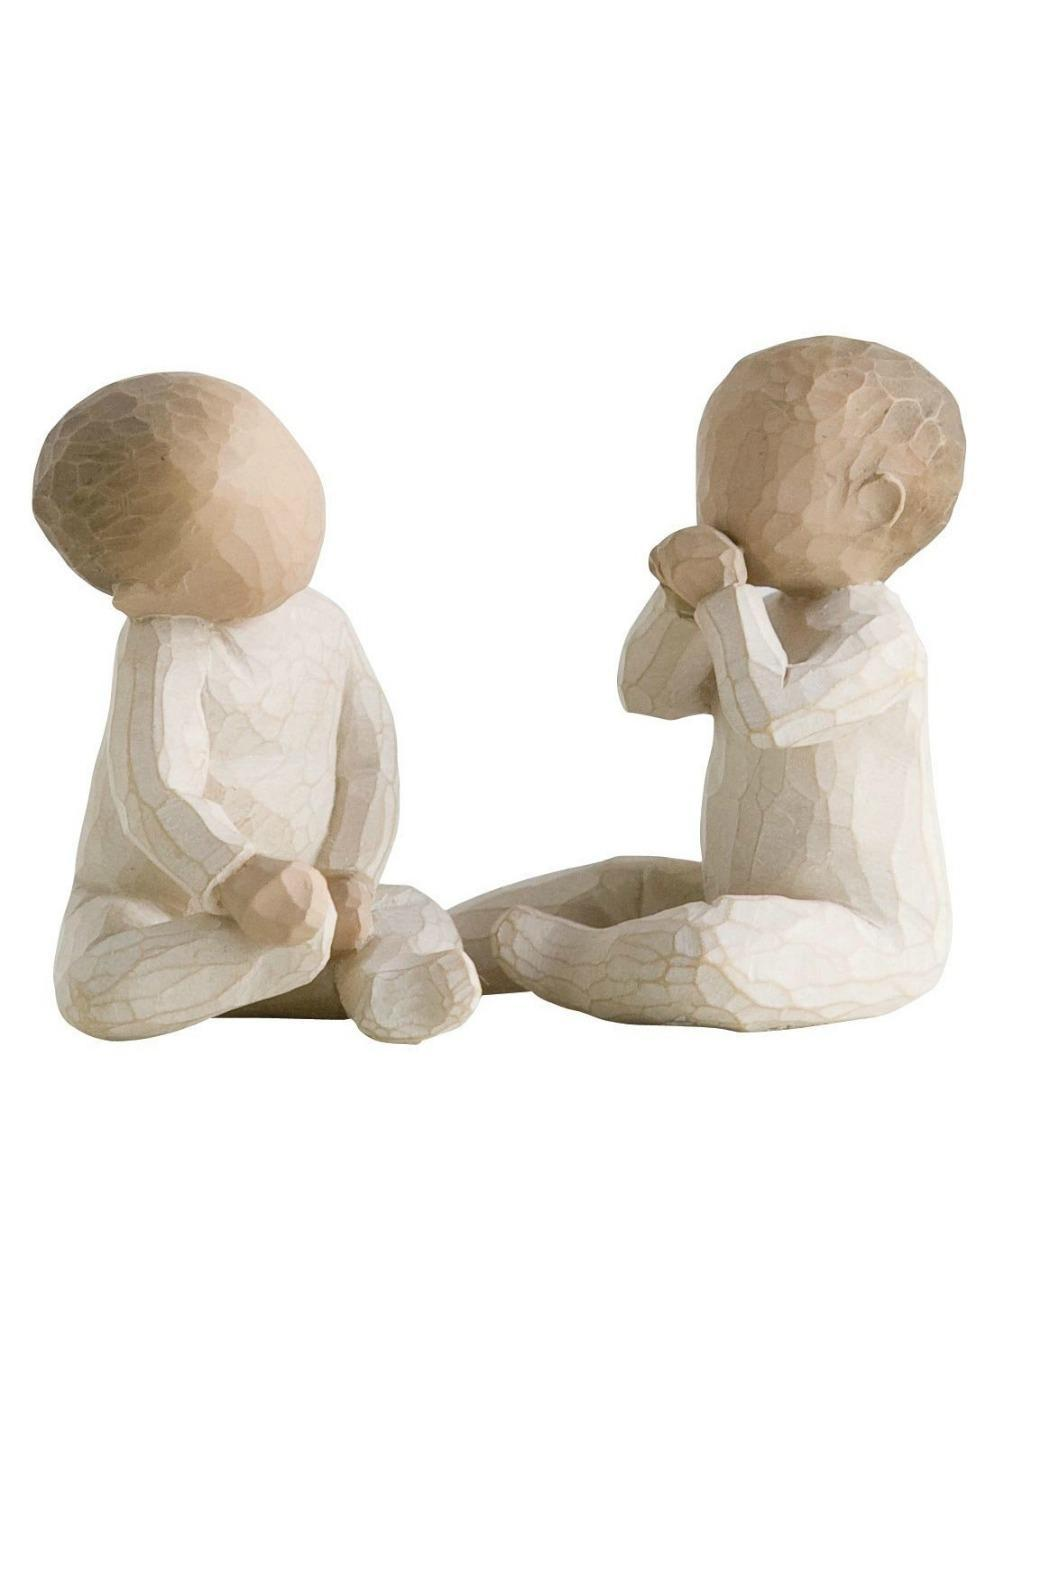 Willow Tree(r) by Susan Lordi, from DEMDACO Two Together Figurine - Main Image